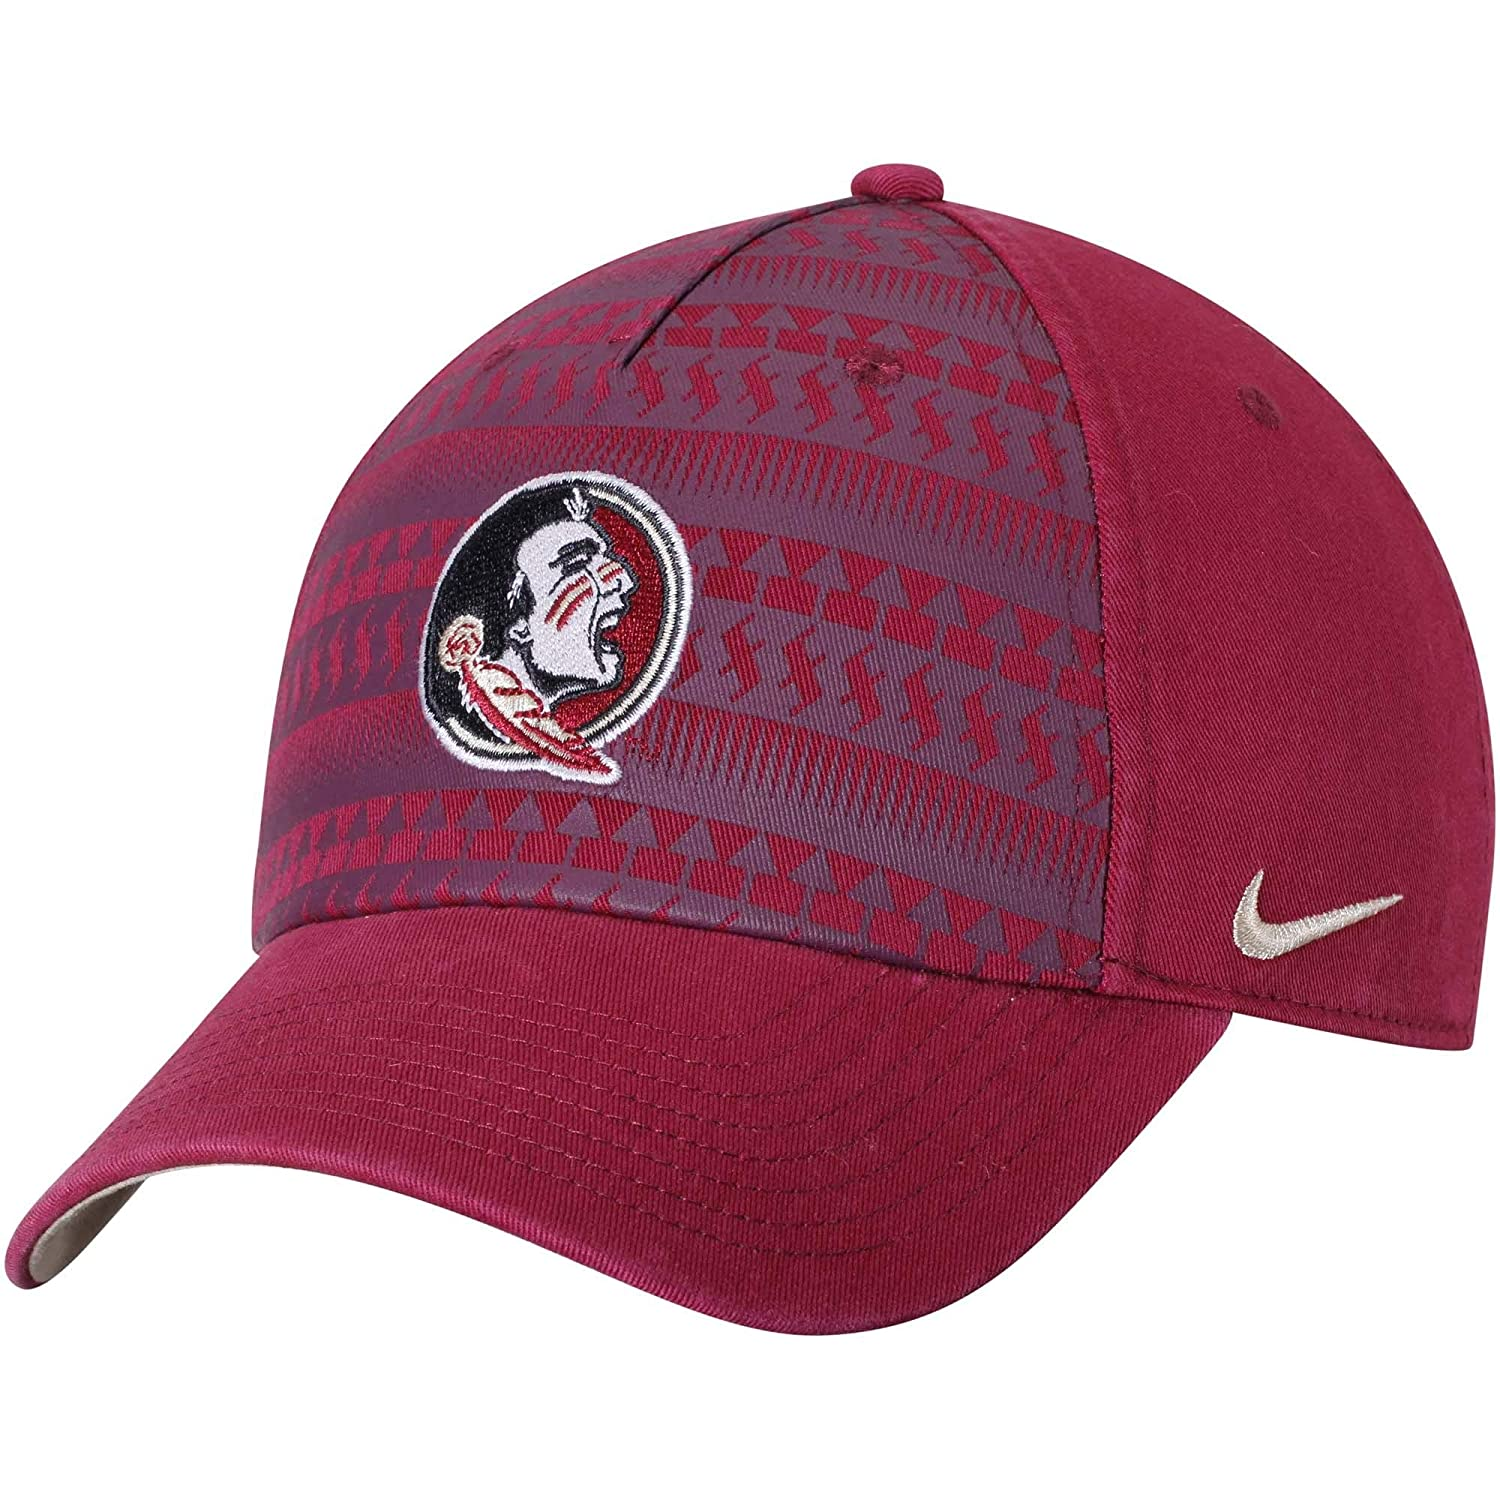 Nike Florida State Seminoles Benassi Slide Adjustable Hat